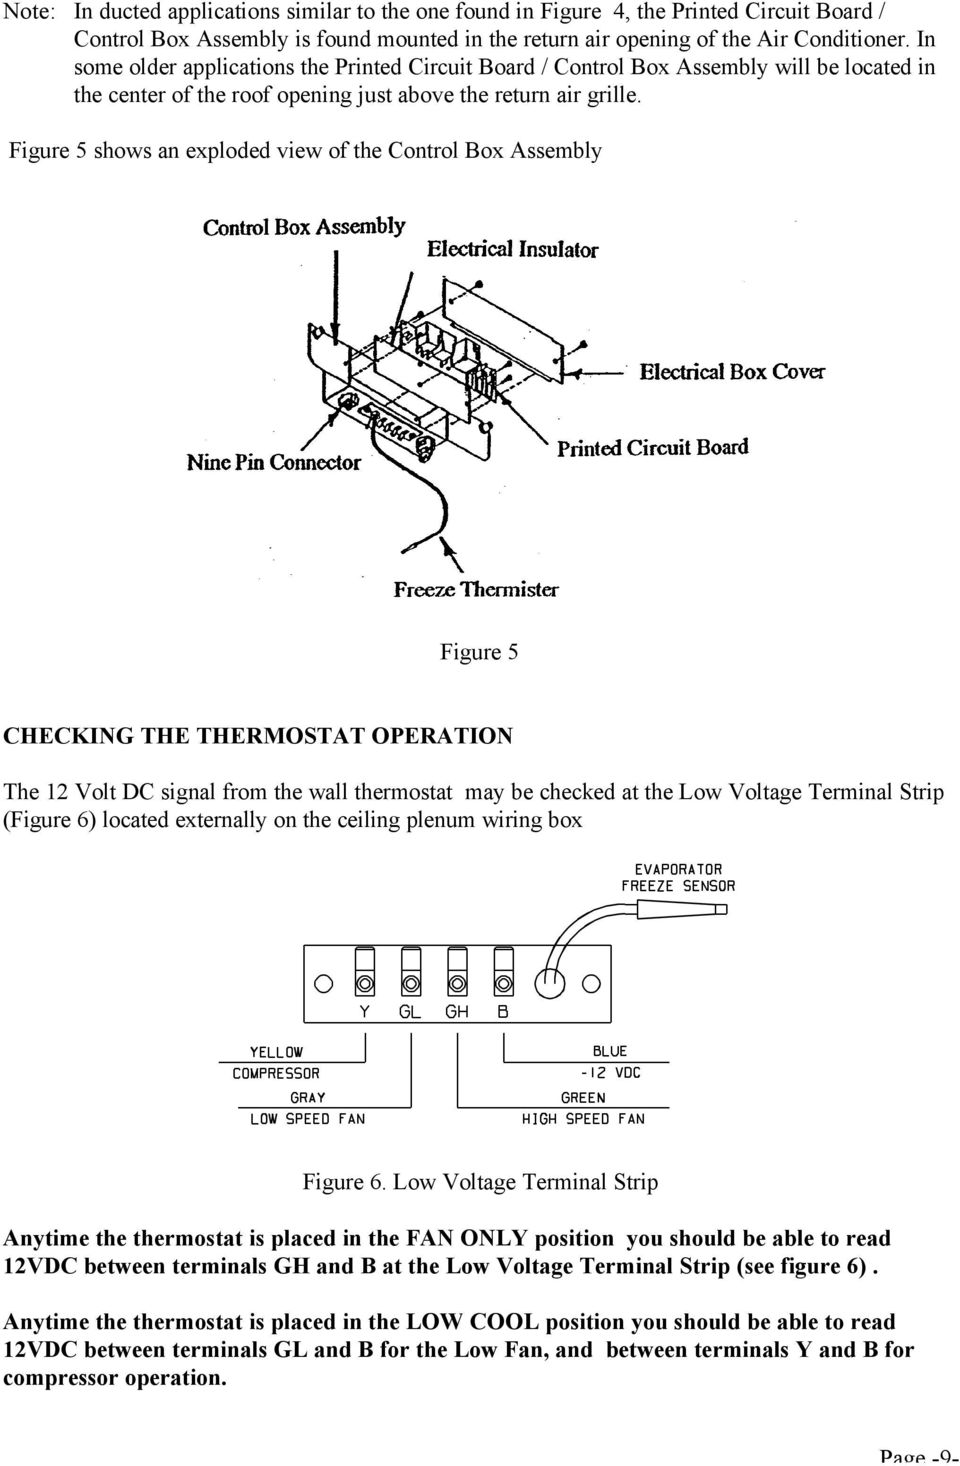 Figure 5 shows an exploded view of the Control Box Assembly Figure 5 CHECKING THE THERMOSTAT OPERATION The 12 Volt DC signal from the wall thermostat may be checked at the Low Voltage Terminal Strip